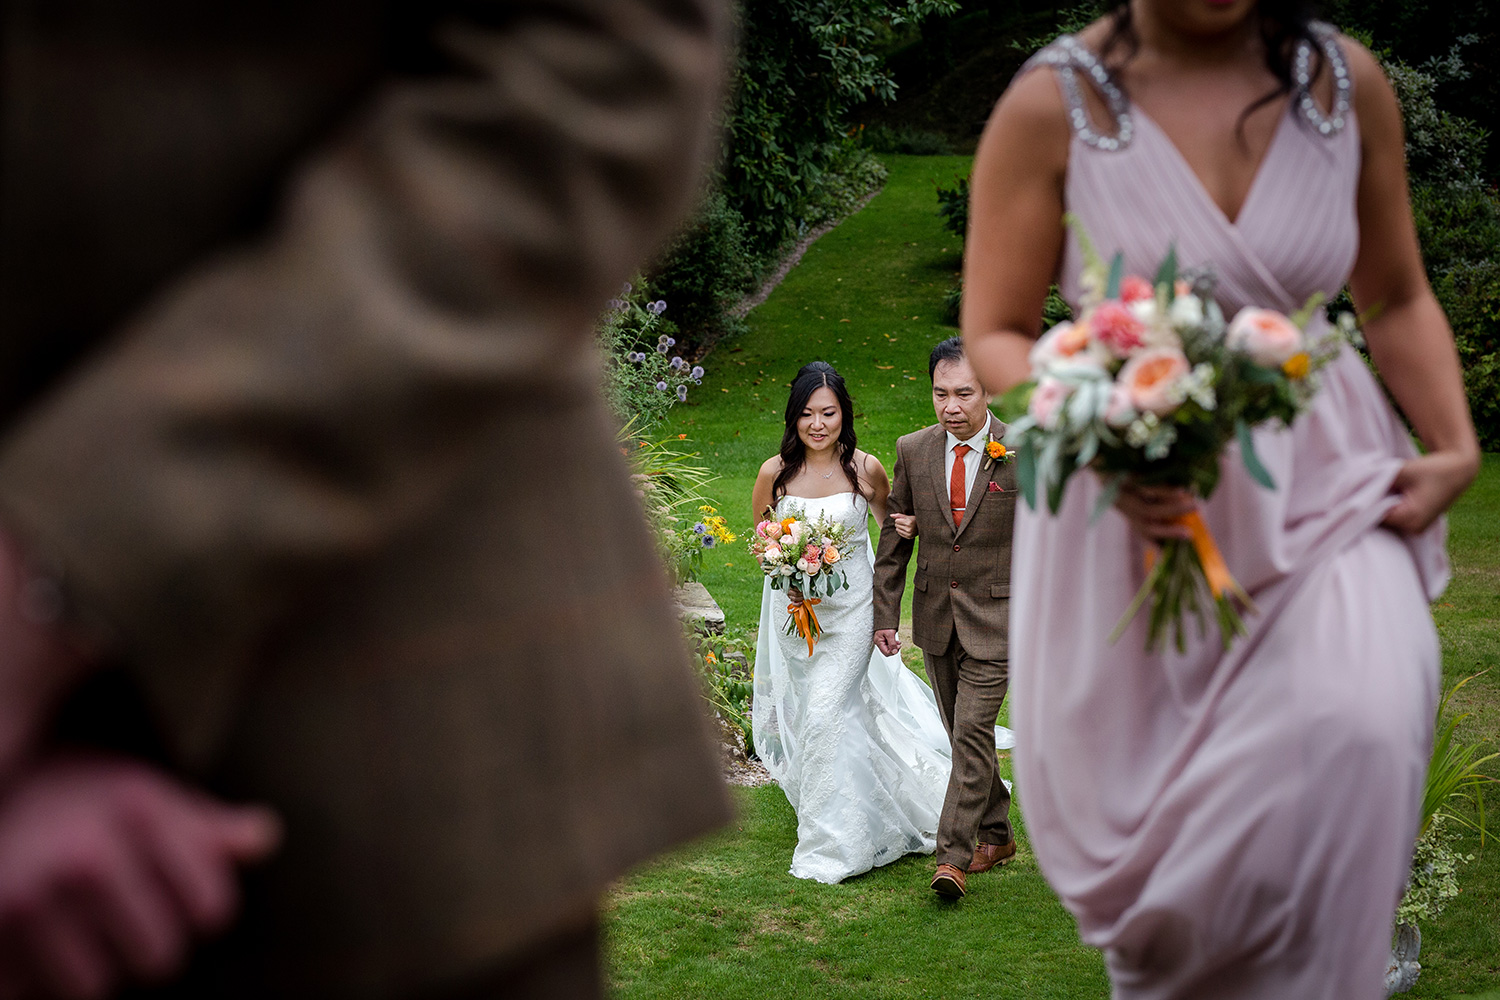 The bride with her dad at a Hilltop Country House Wedding in Cheshire